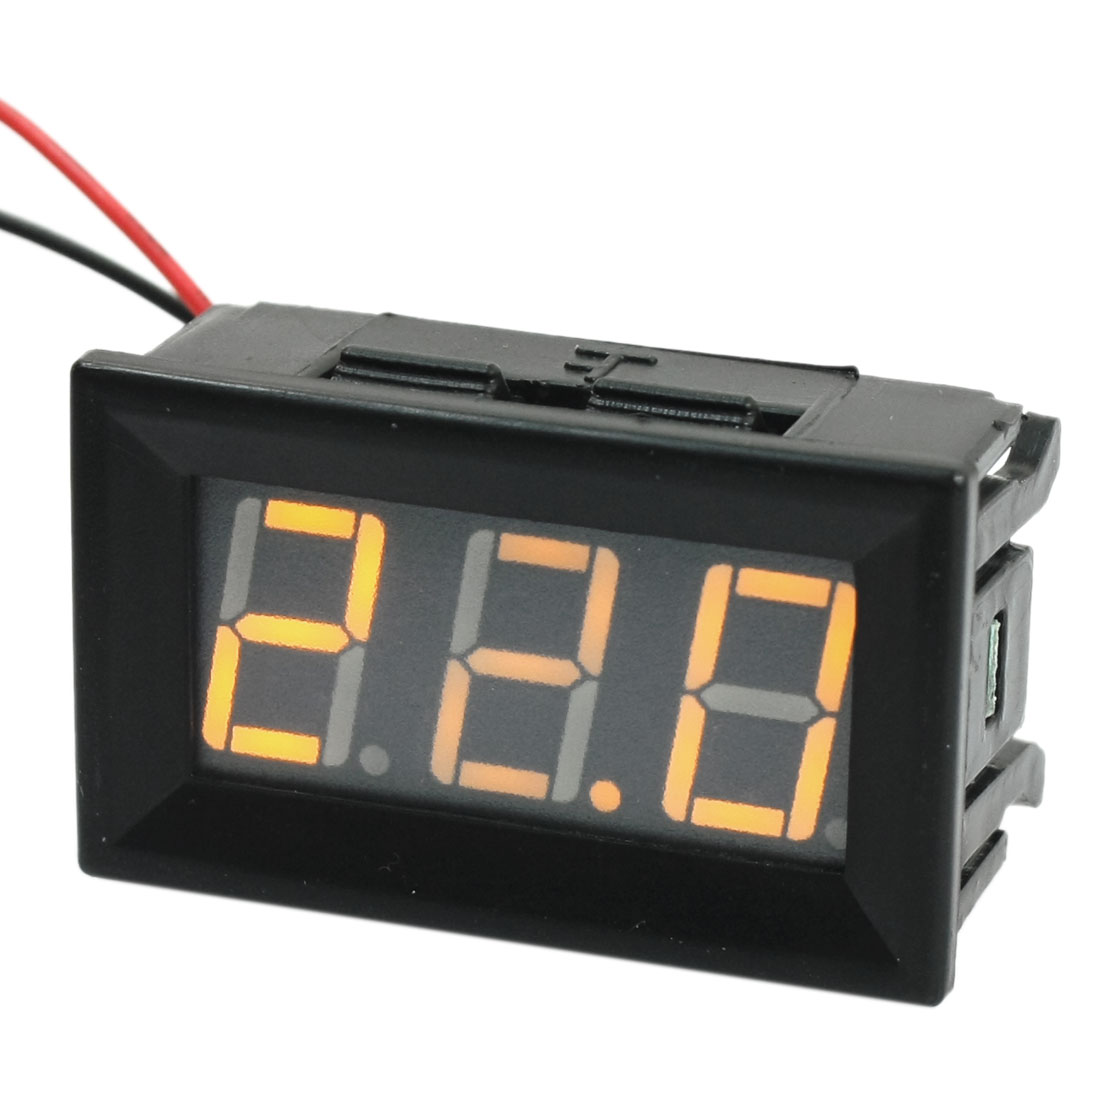 Digital DC 5-120V LED Display Yellow Digit Voltage Tester Gauge Panel Voltmeter